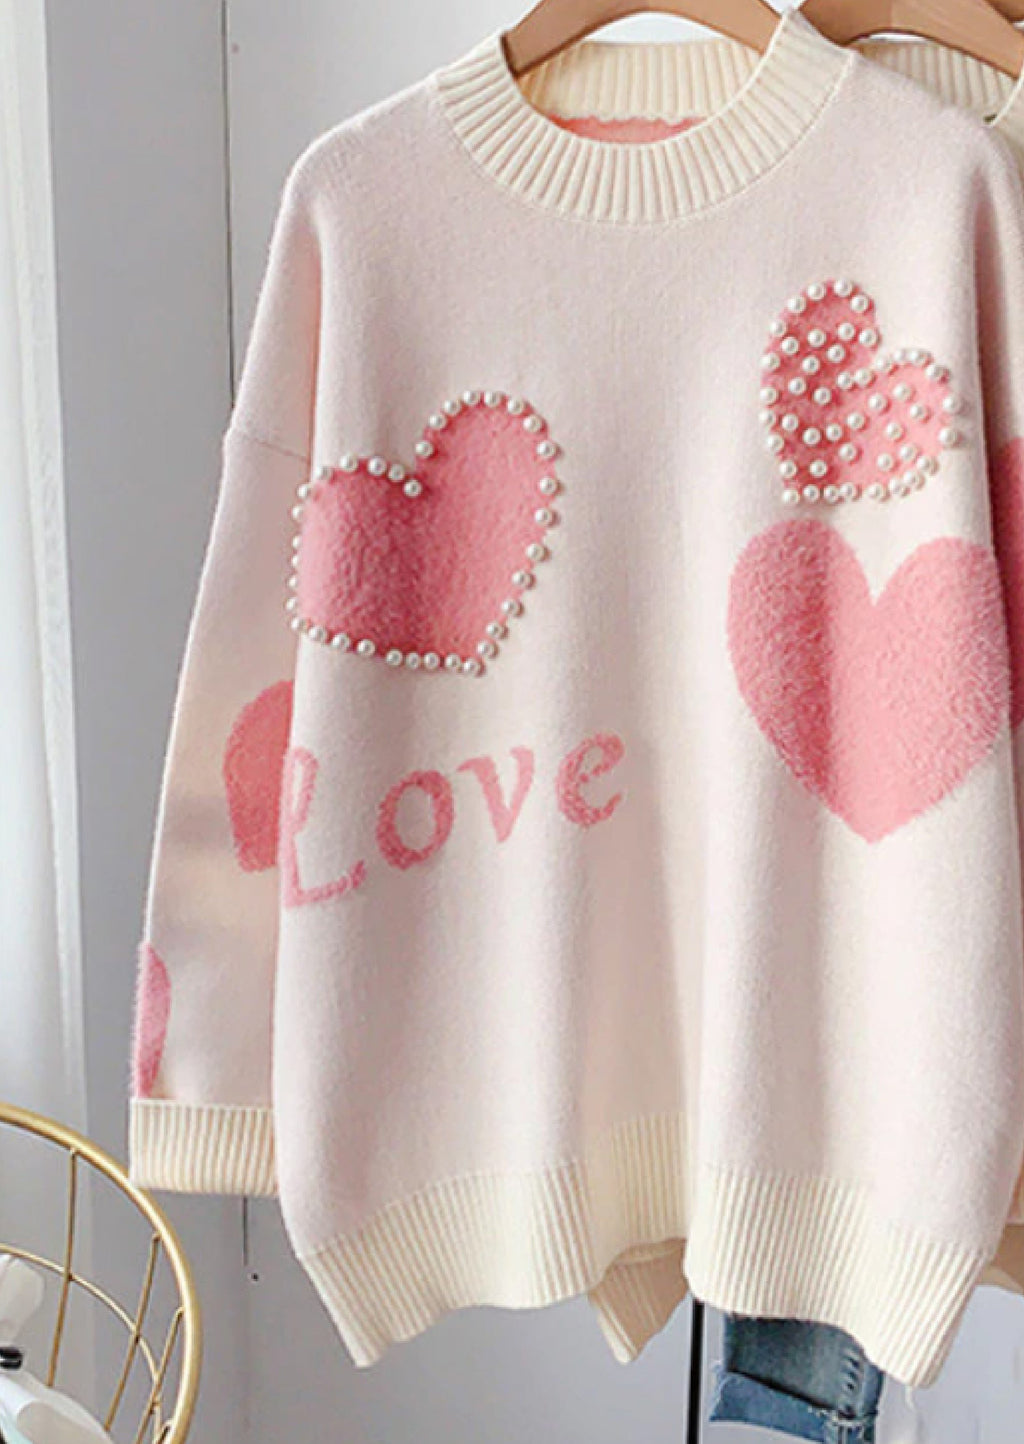 My Love Sweater